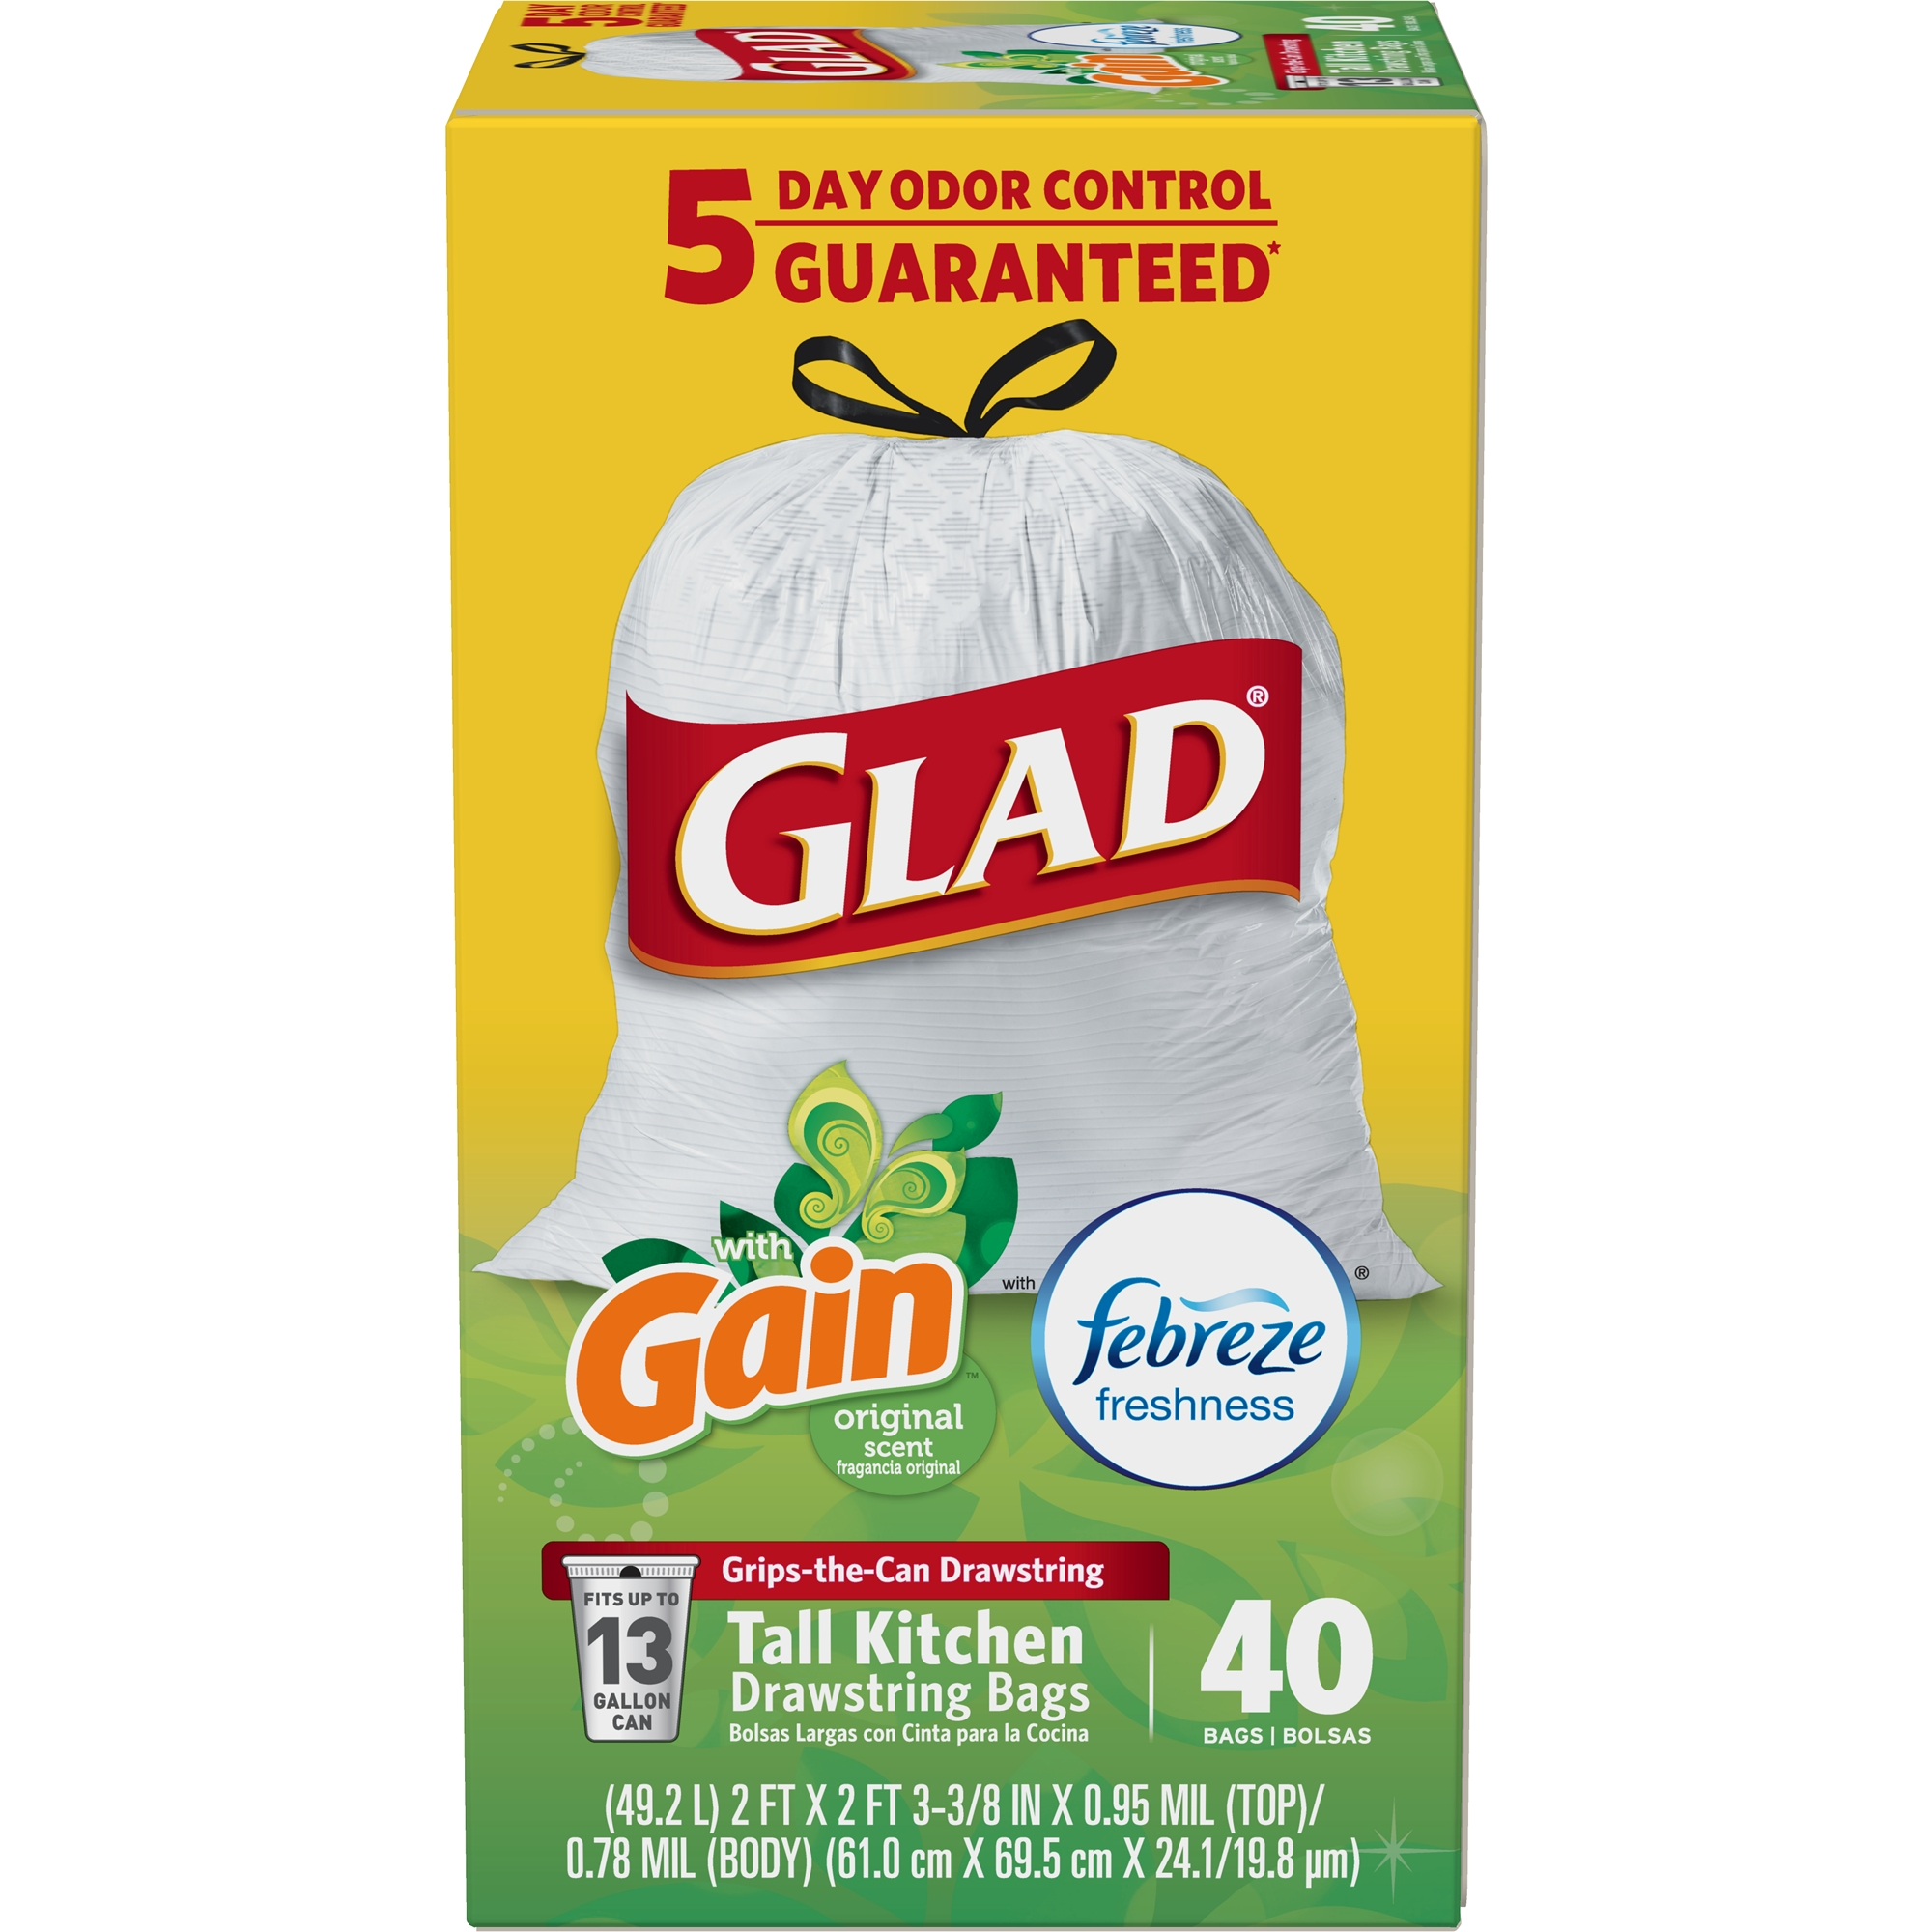 Glad OdorShield Tall Kitchen Drawstring Trash Bags, Gain Original with Febreze Freshness, 13 Gallon, 40 Count